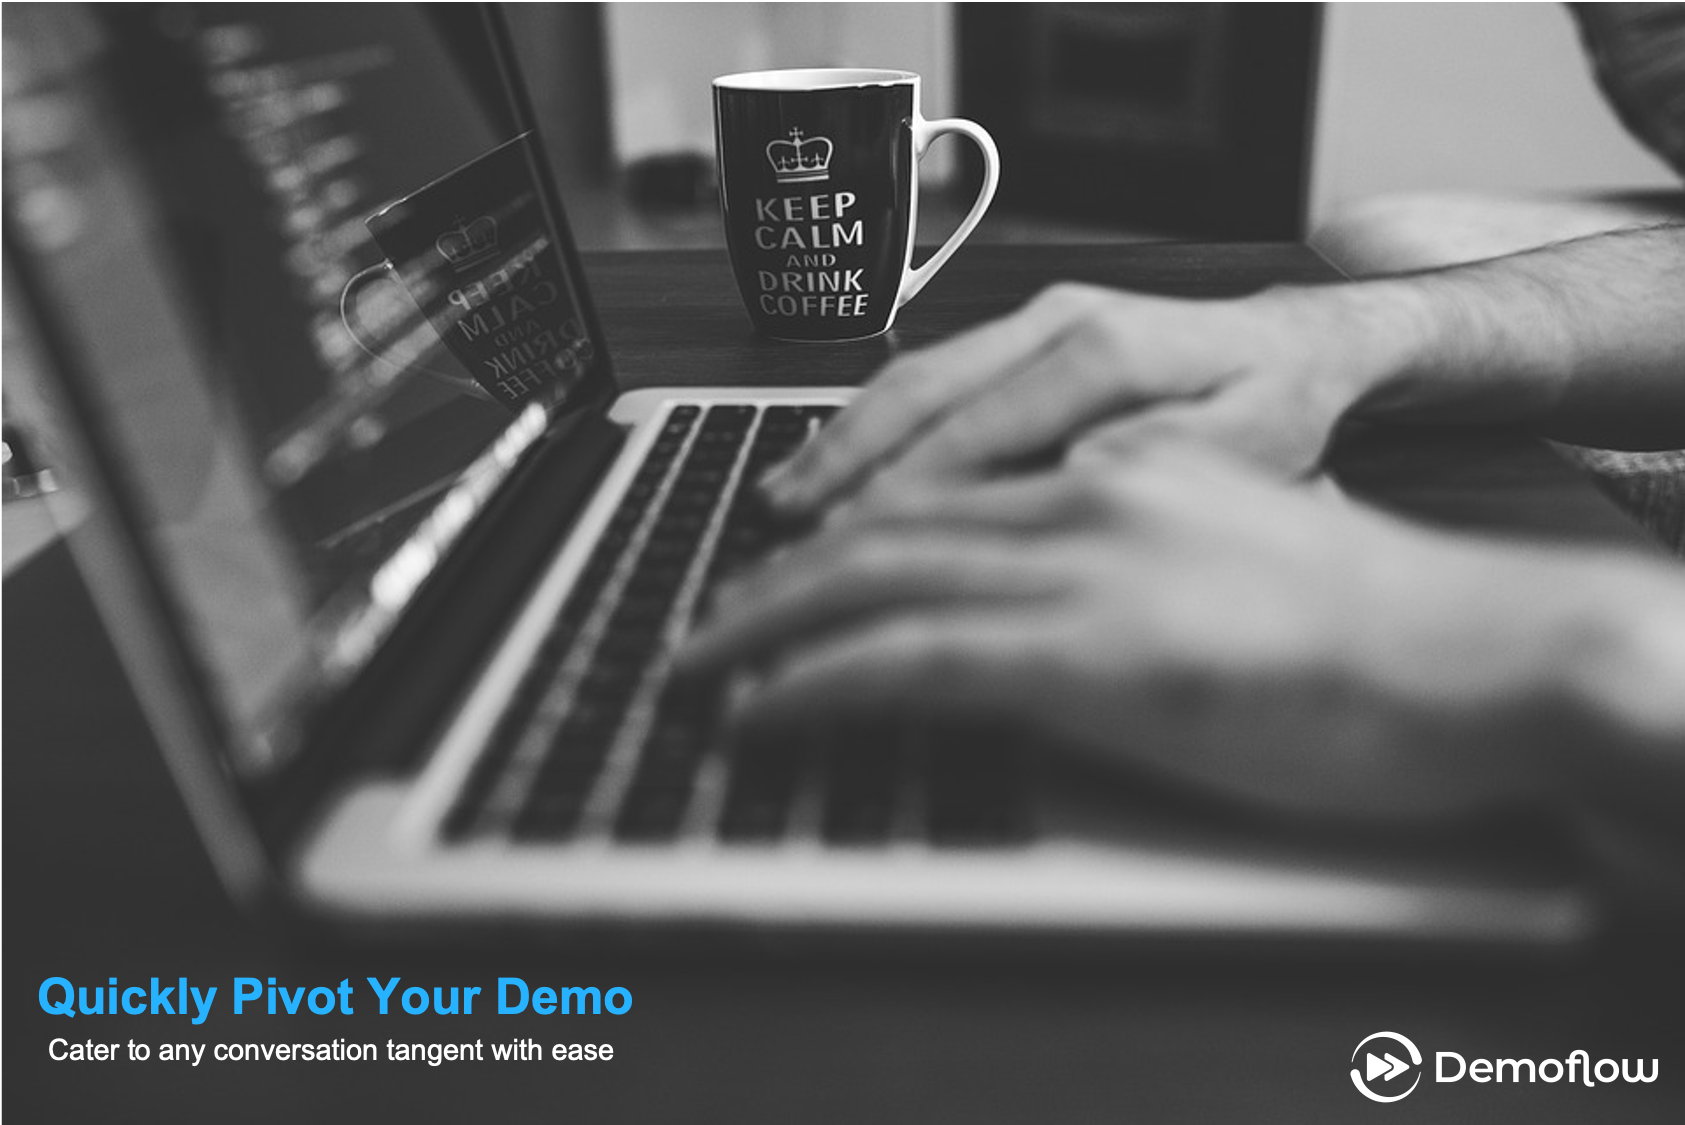 How to quickly pivot your demo